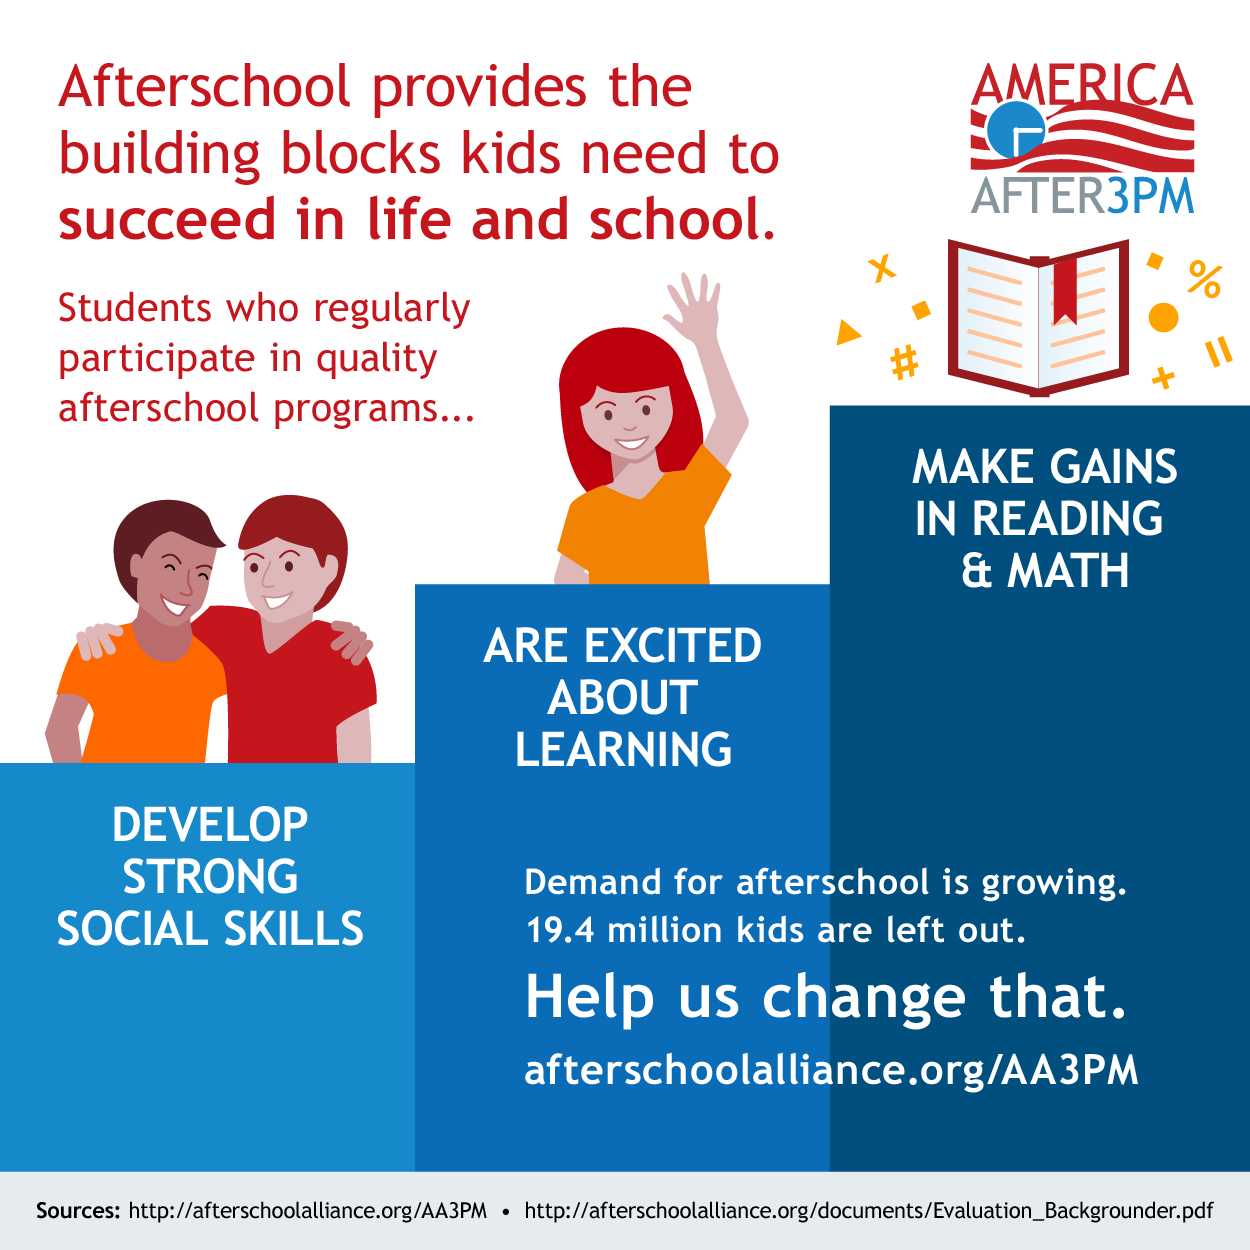 Afterschool programs are important...yet unaffordable for some.